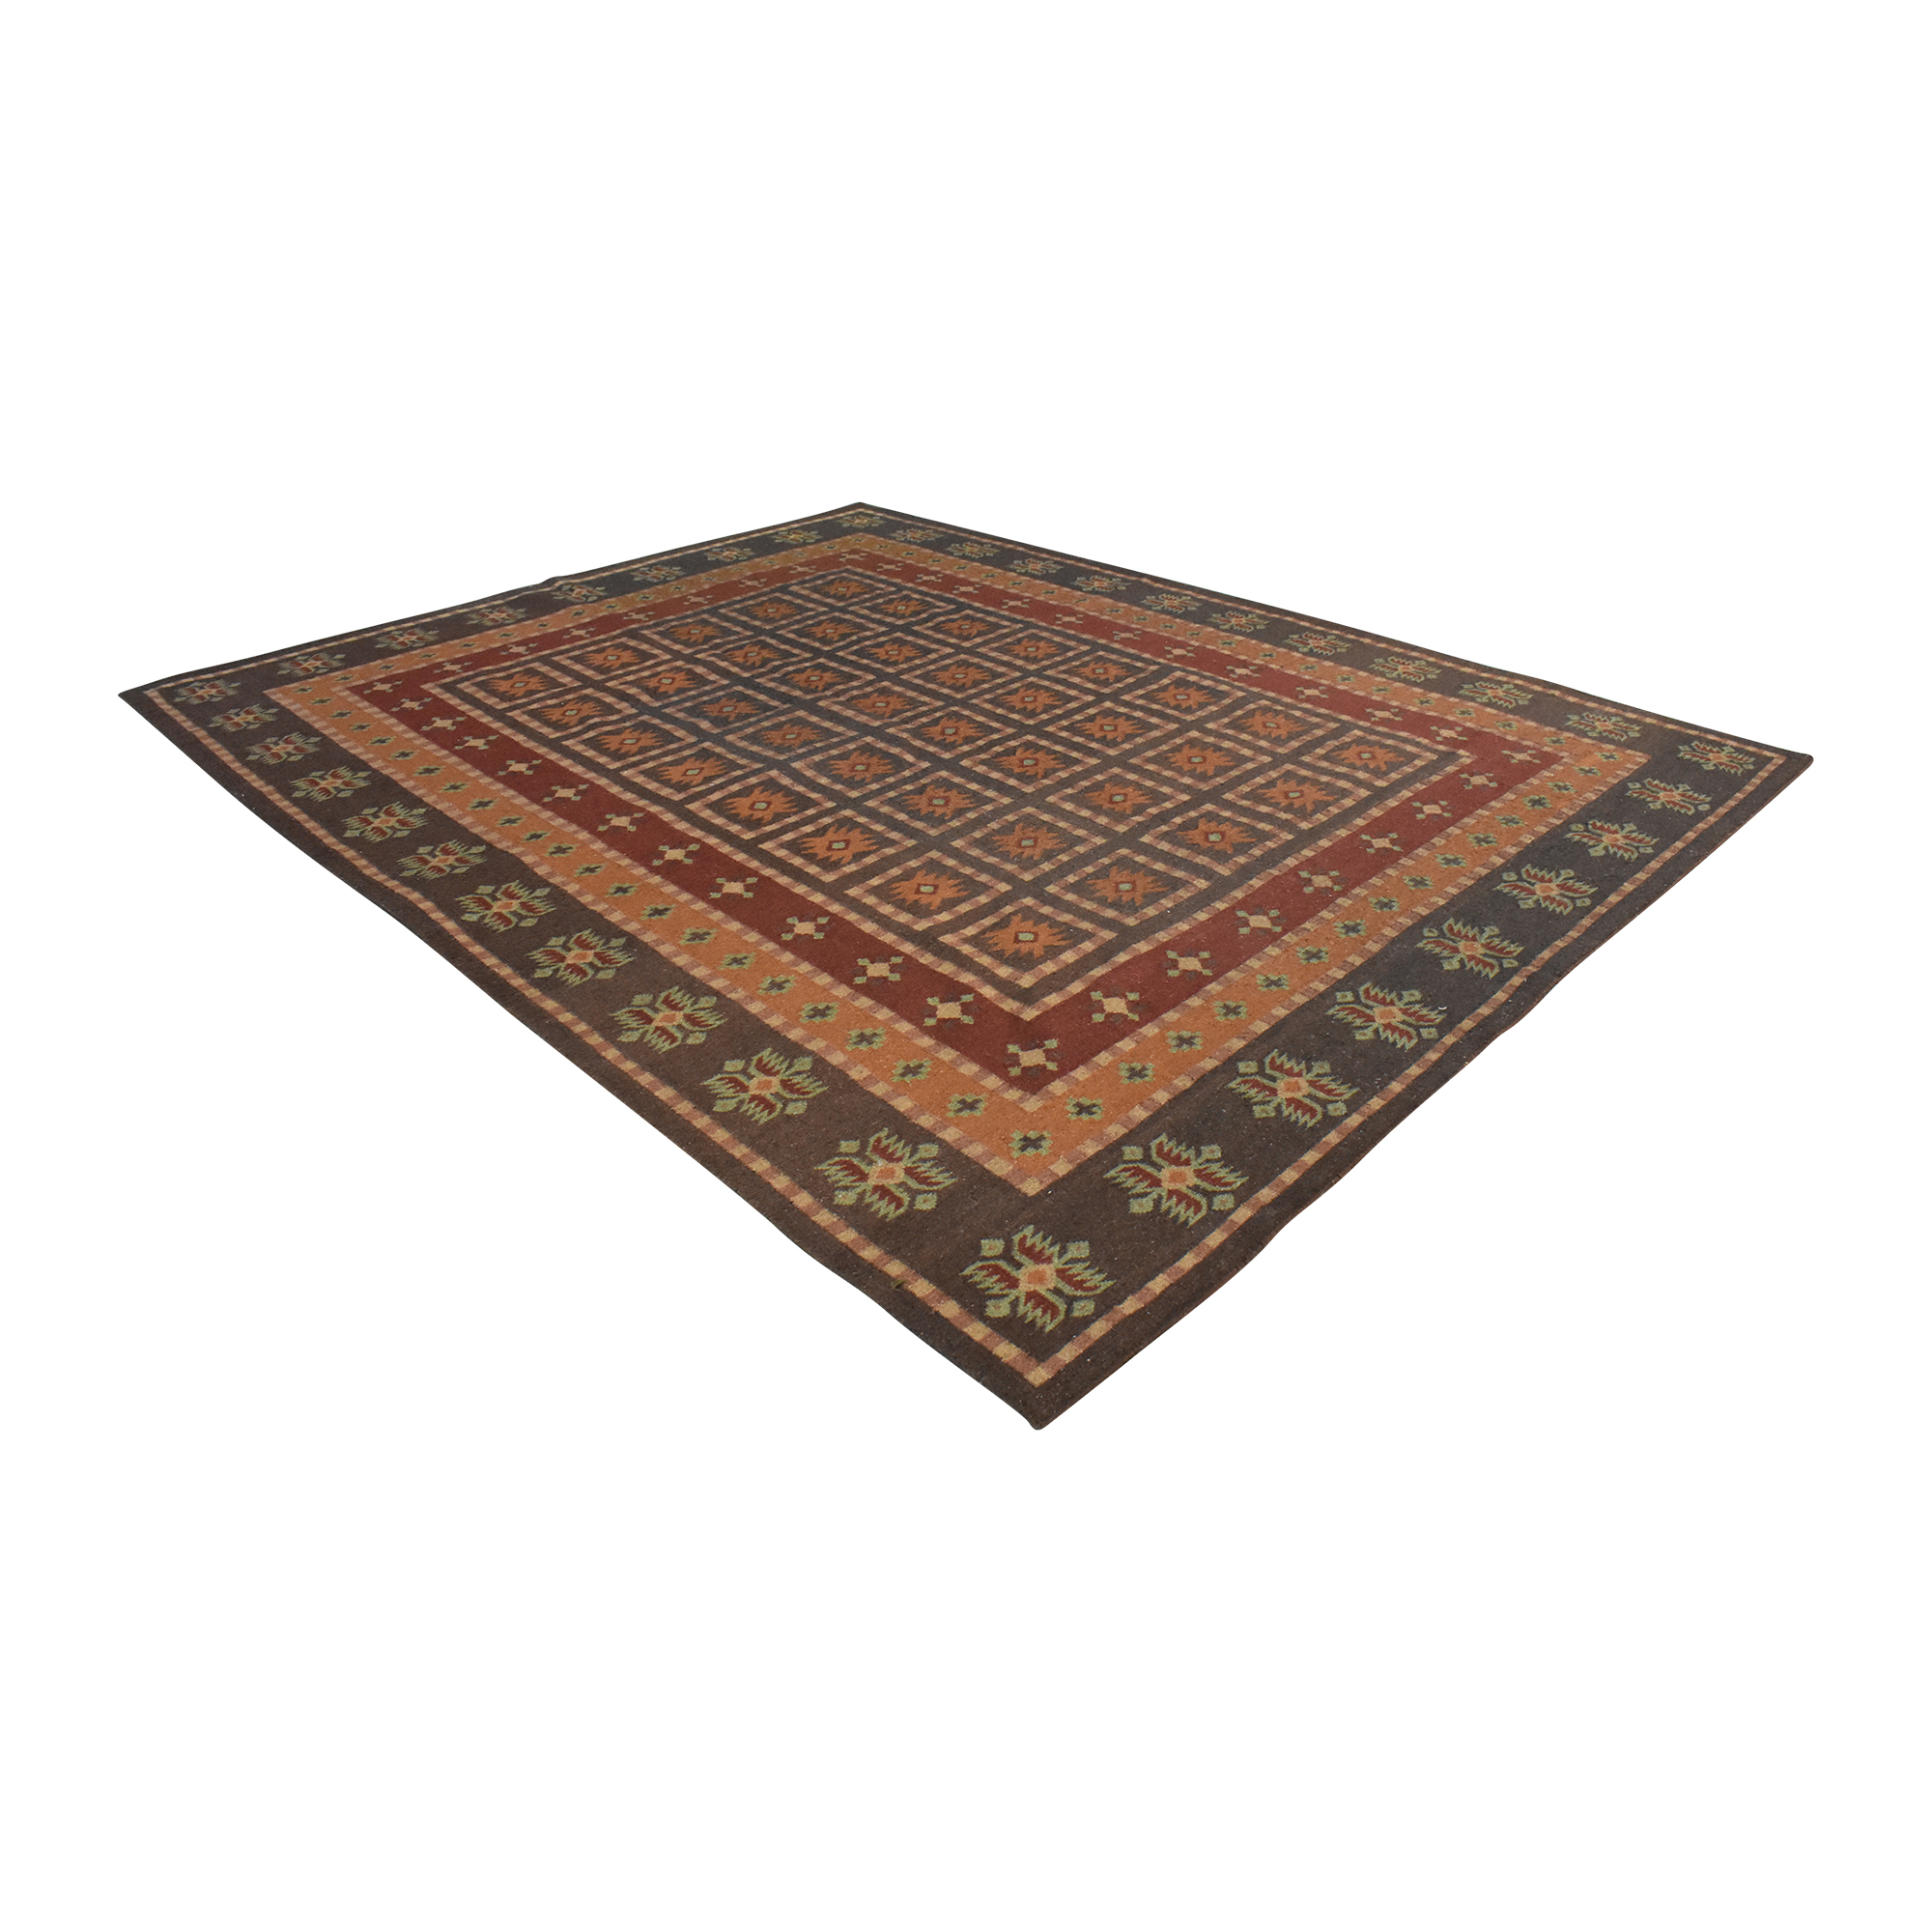 Pottery Barn Patterned Area Rug / Rugs